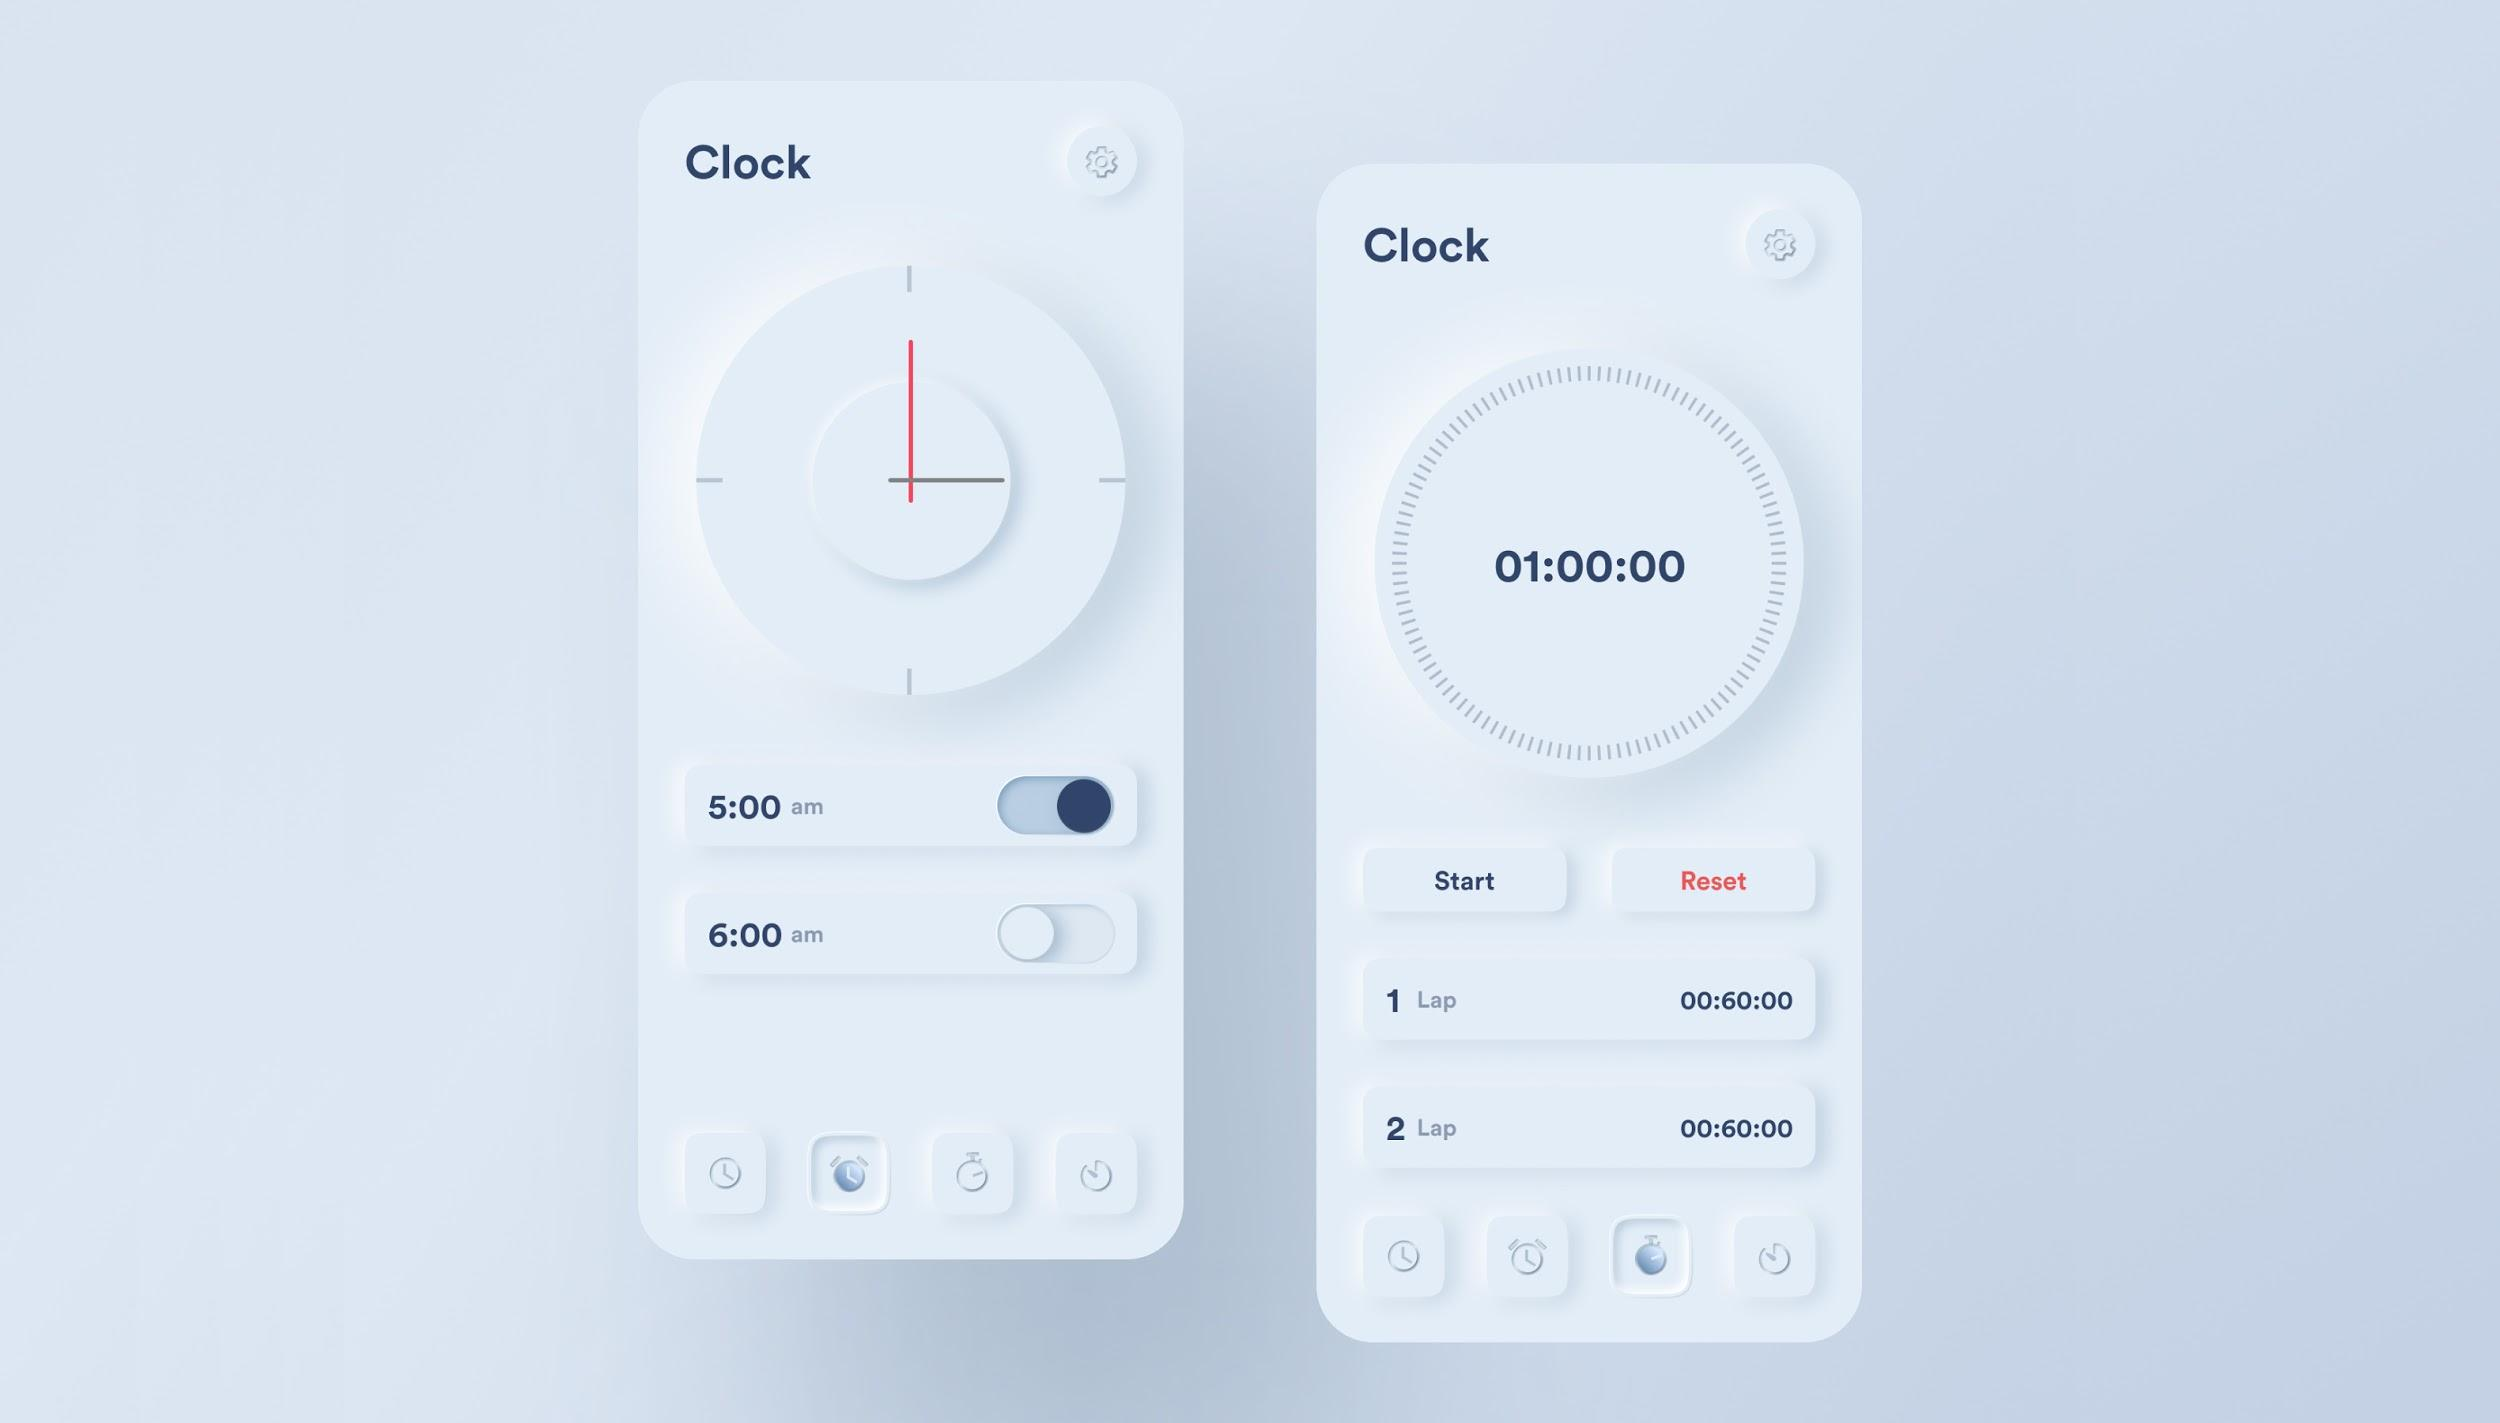 Neumorphic clock app, another mobile UX design trend